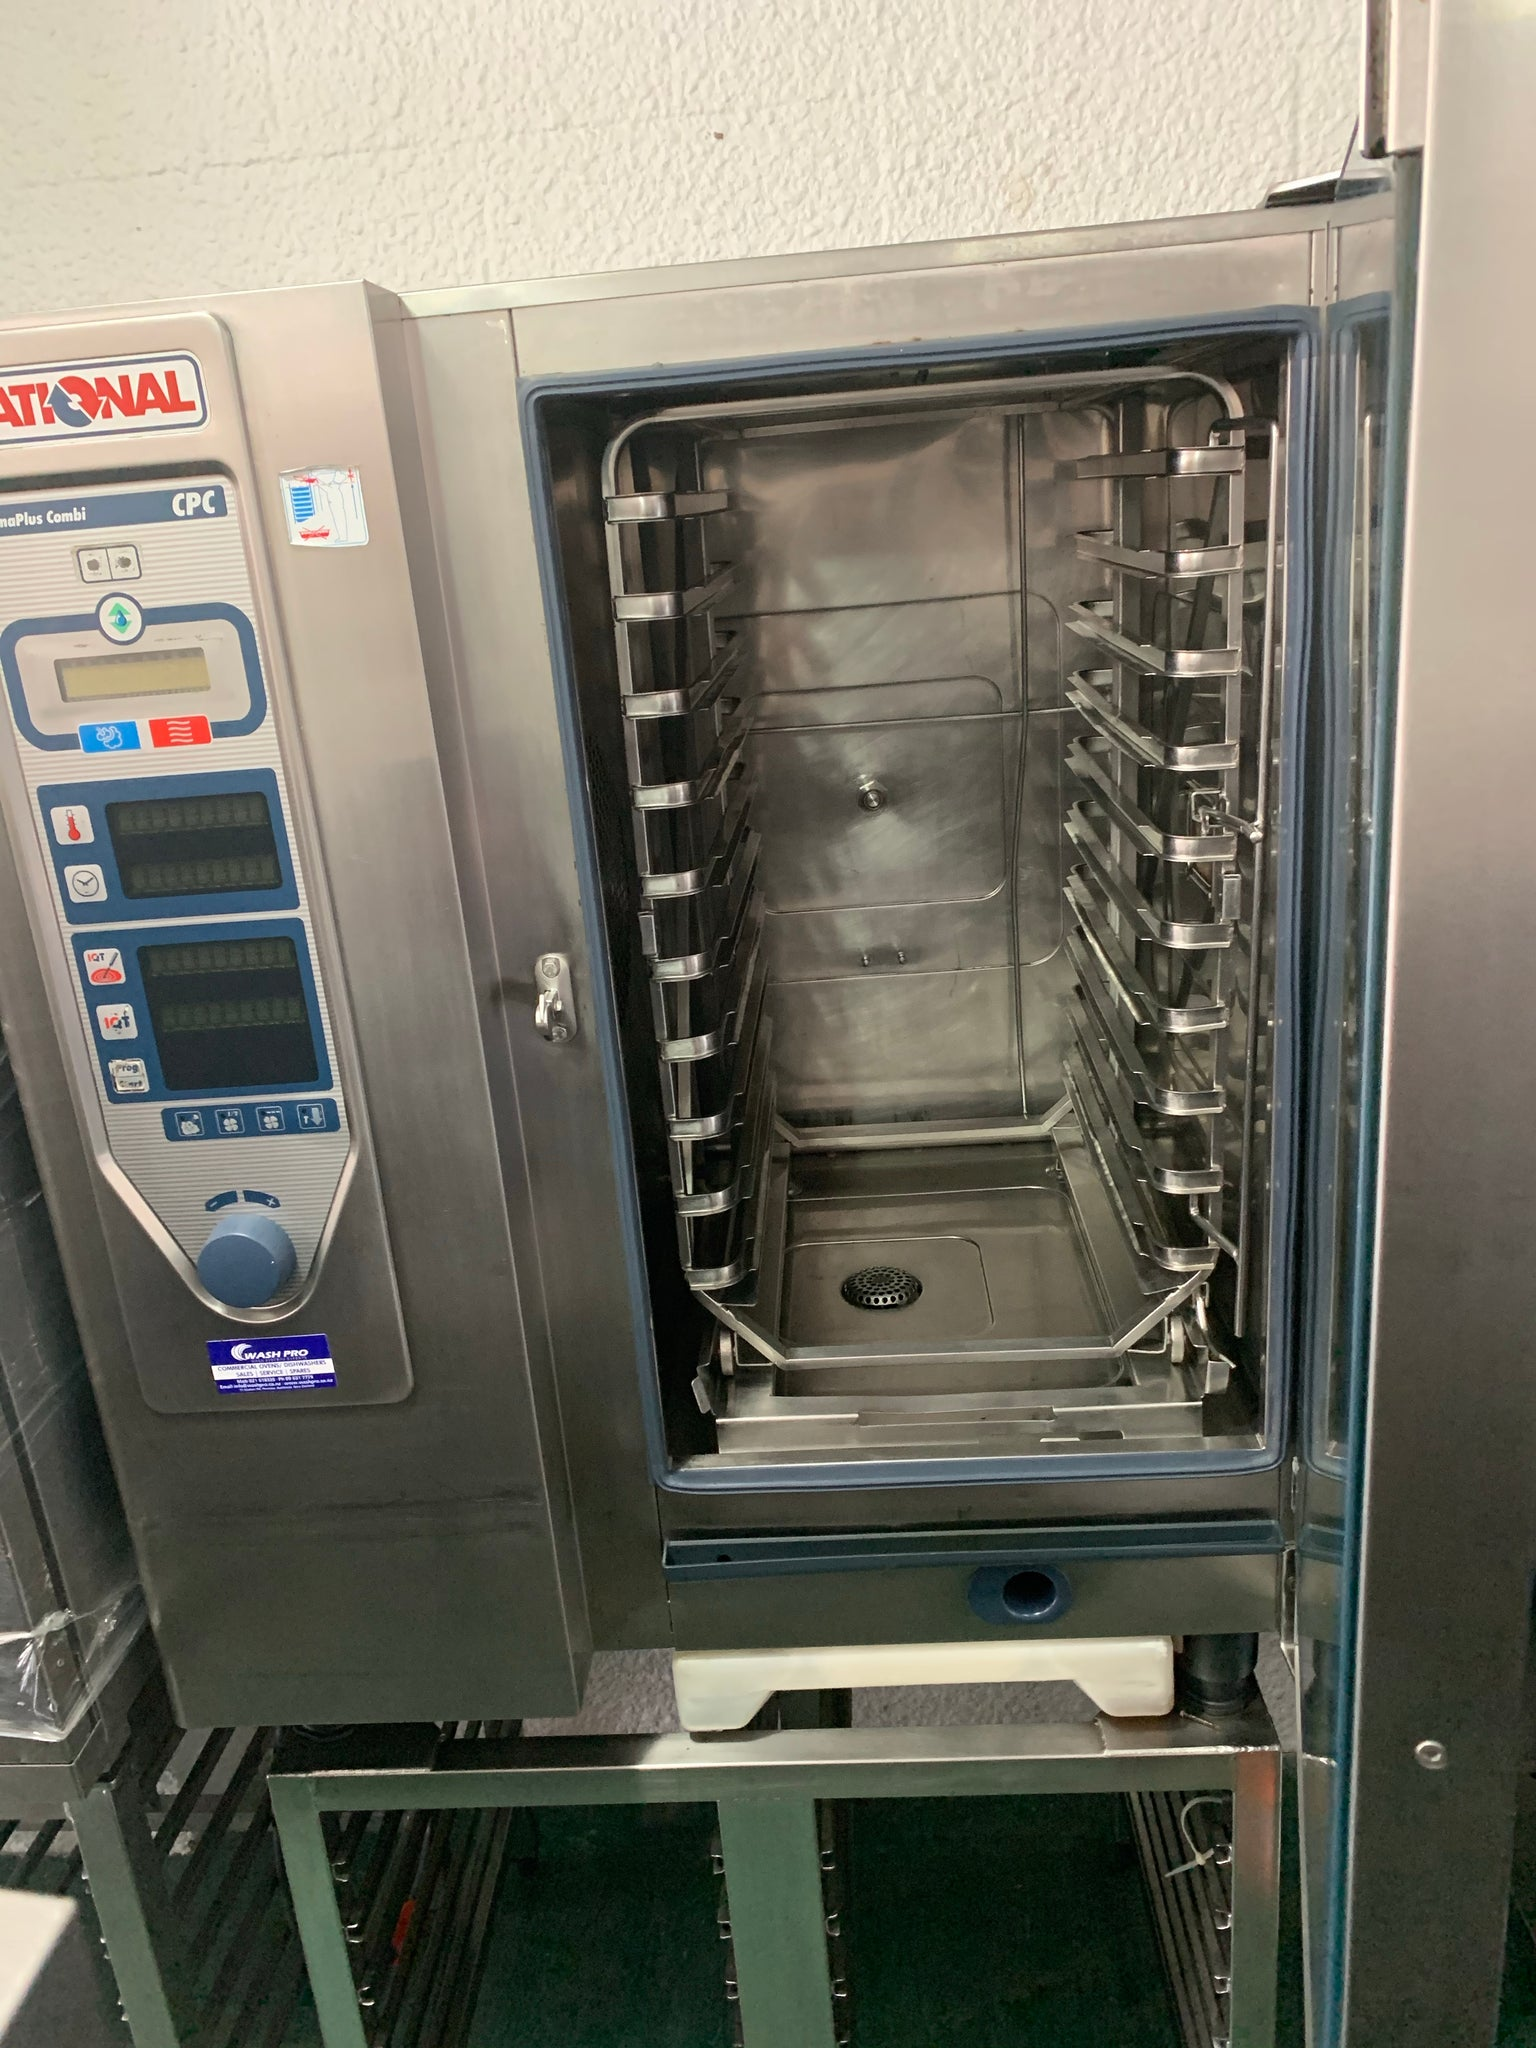 APS302 RATIONAL CPC 101 SELF CLEANING 10 TRAY COMMERCIAL COMBI OVEN WITH STAND AND WARRANTY - Washpro